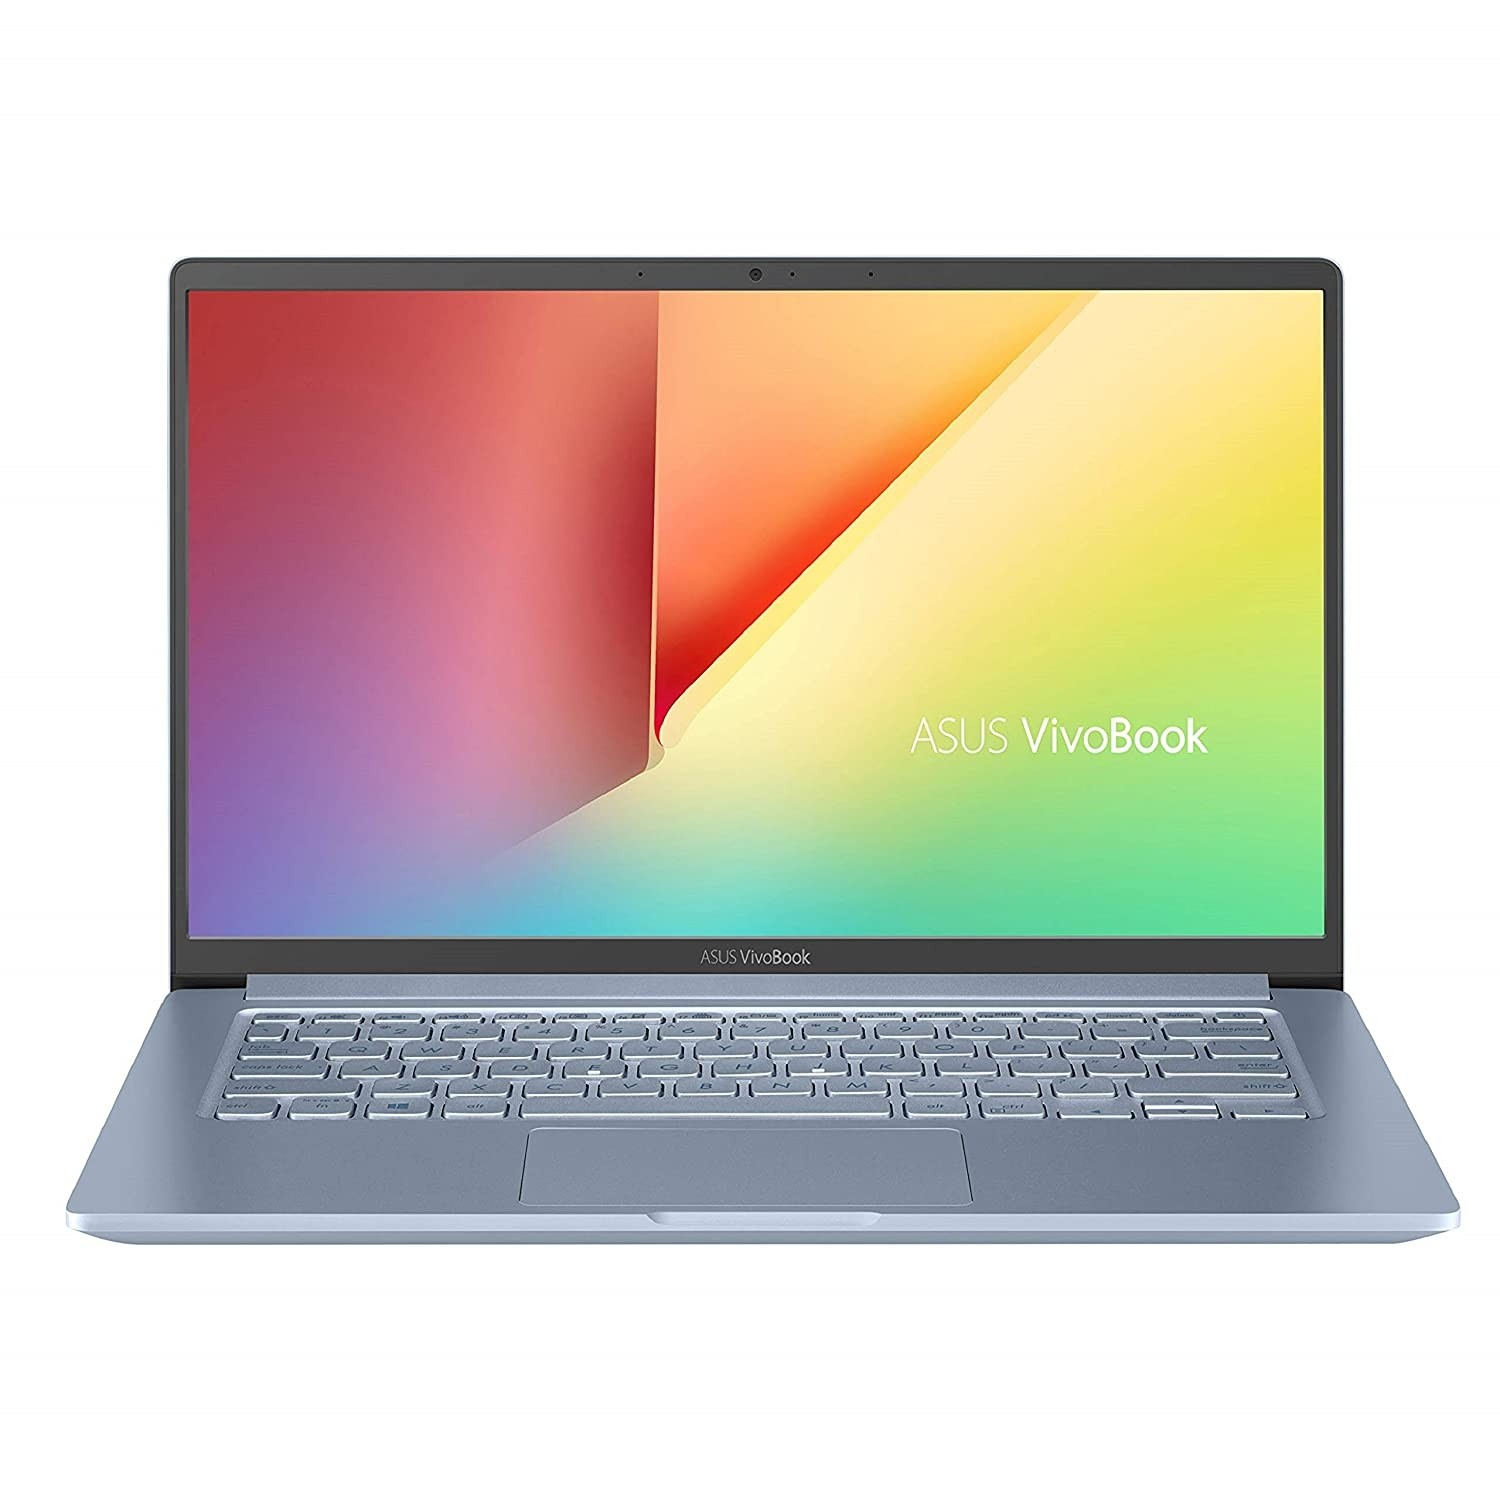 Refurbished laptops & desktops - ASUS VivoBook S14 Intel Core i5-1035G1 10th Gen 14-inch FHD Thin and Light Laptop (8GB RAM/512GB NVMe SSD + 32GB Optane Memory/Windows 10/Silver Blue/1.35 kg), S403JA-BM033TS